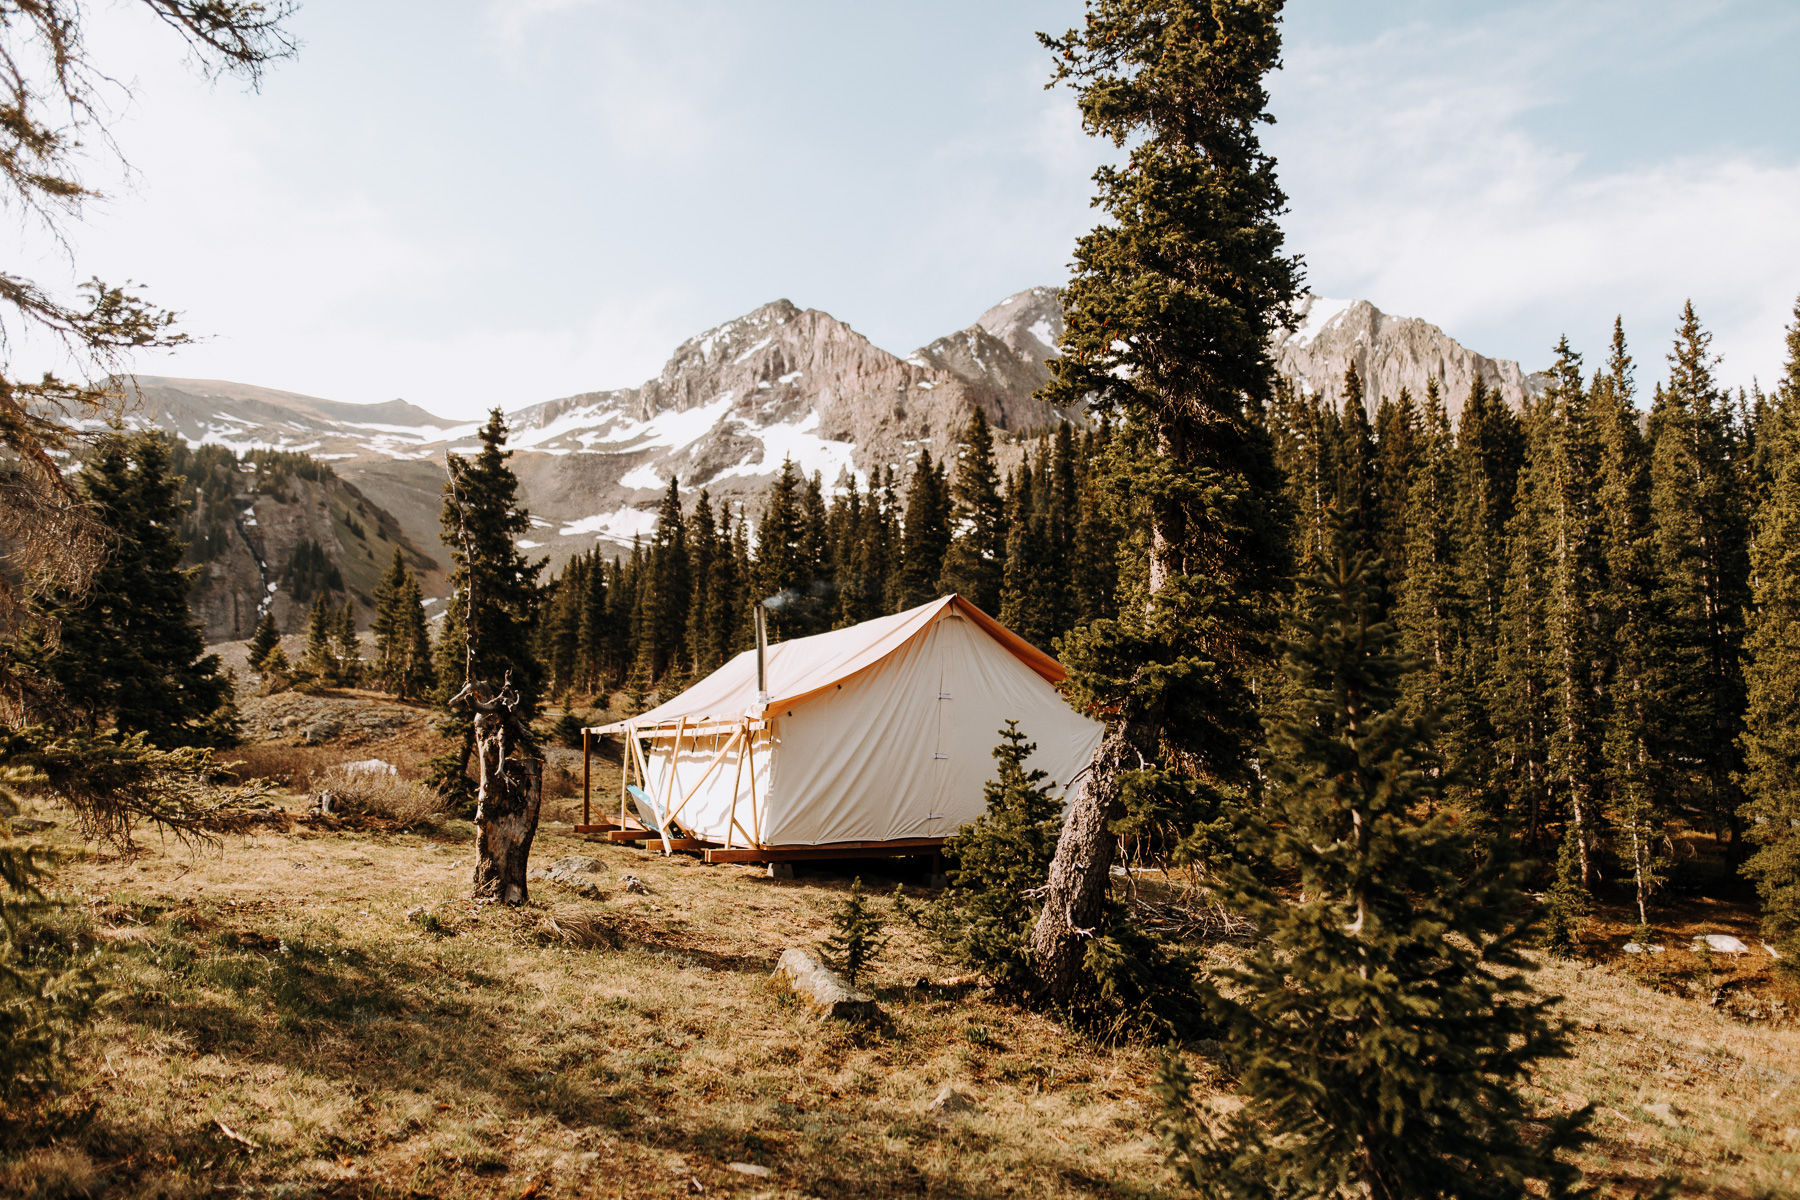 The Ultimate 10 Day Road Trip Through Colorado | Catered Glamping Imogene Pass Ouray